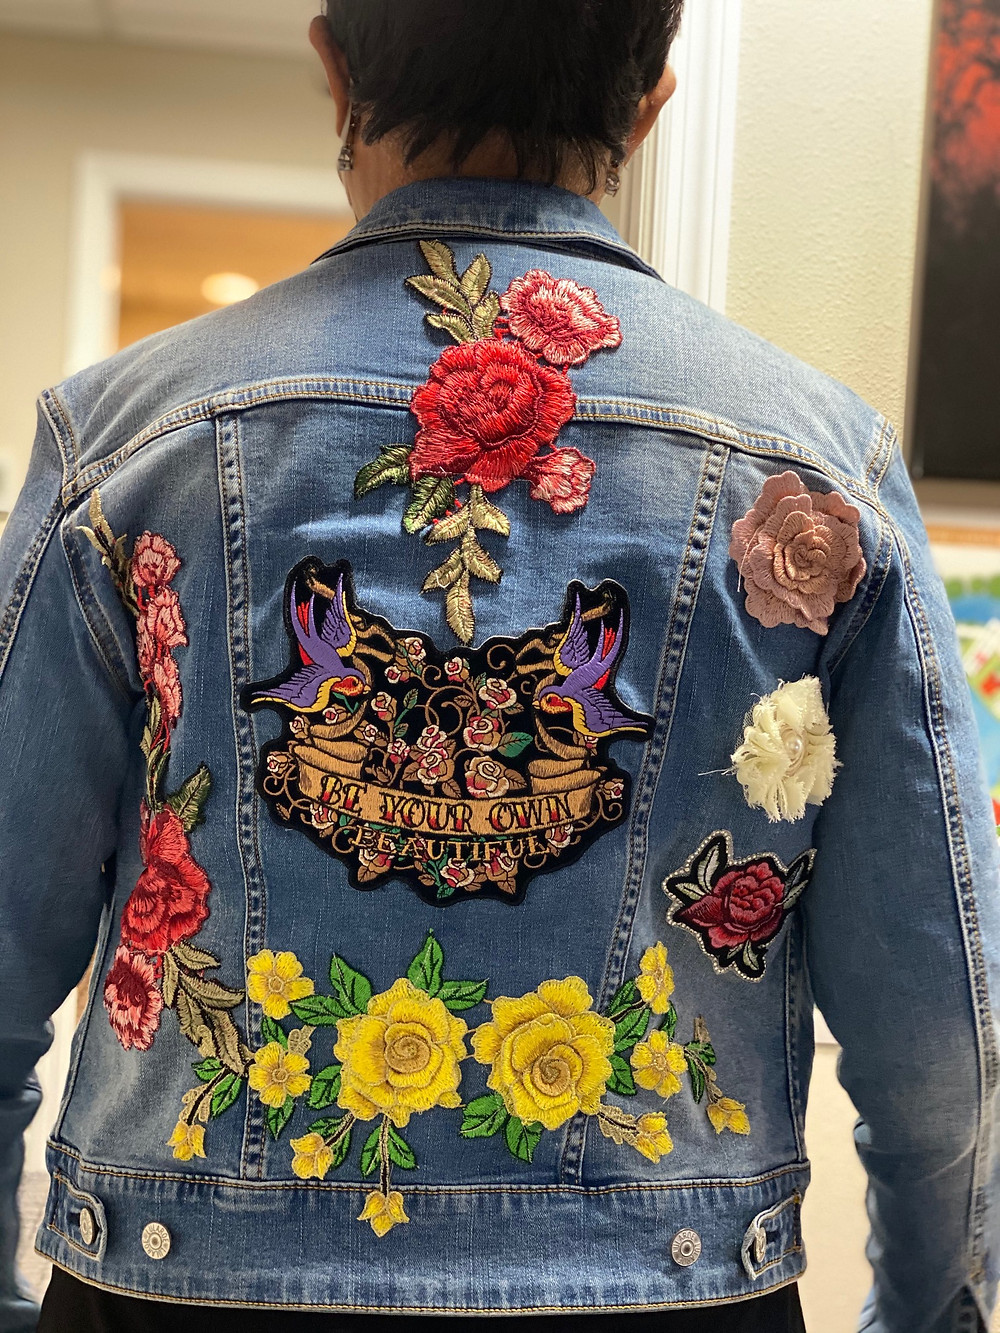 Artwork embroidery on back of jean jacket